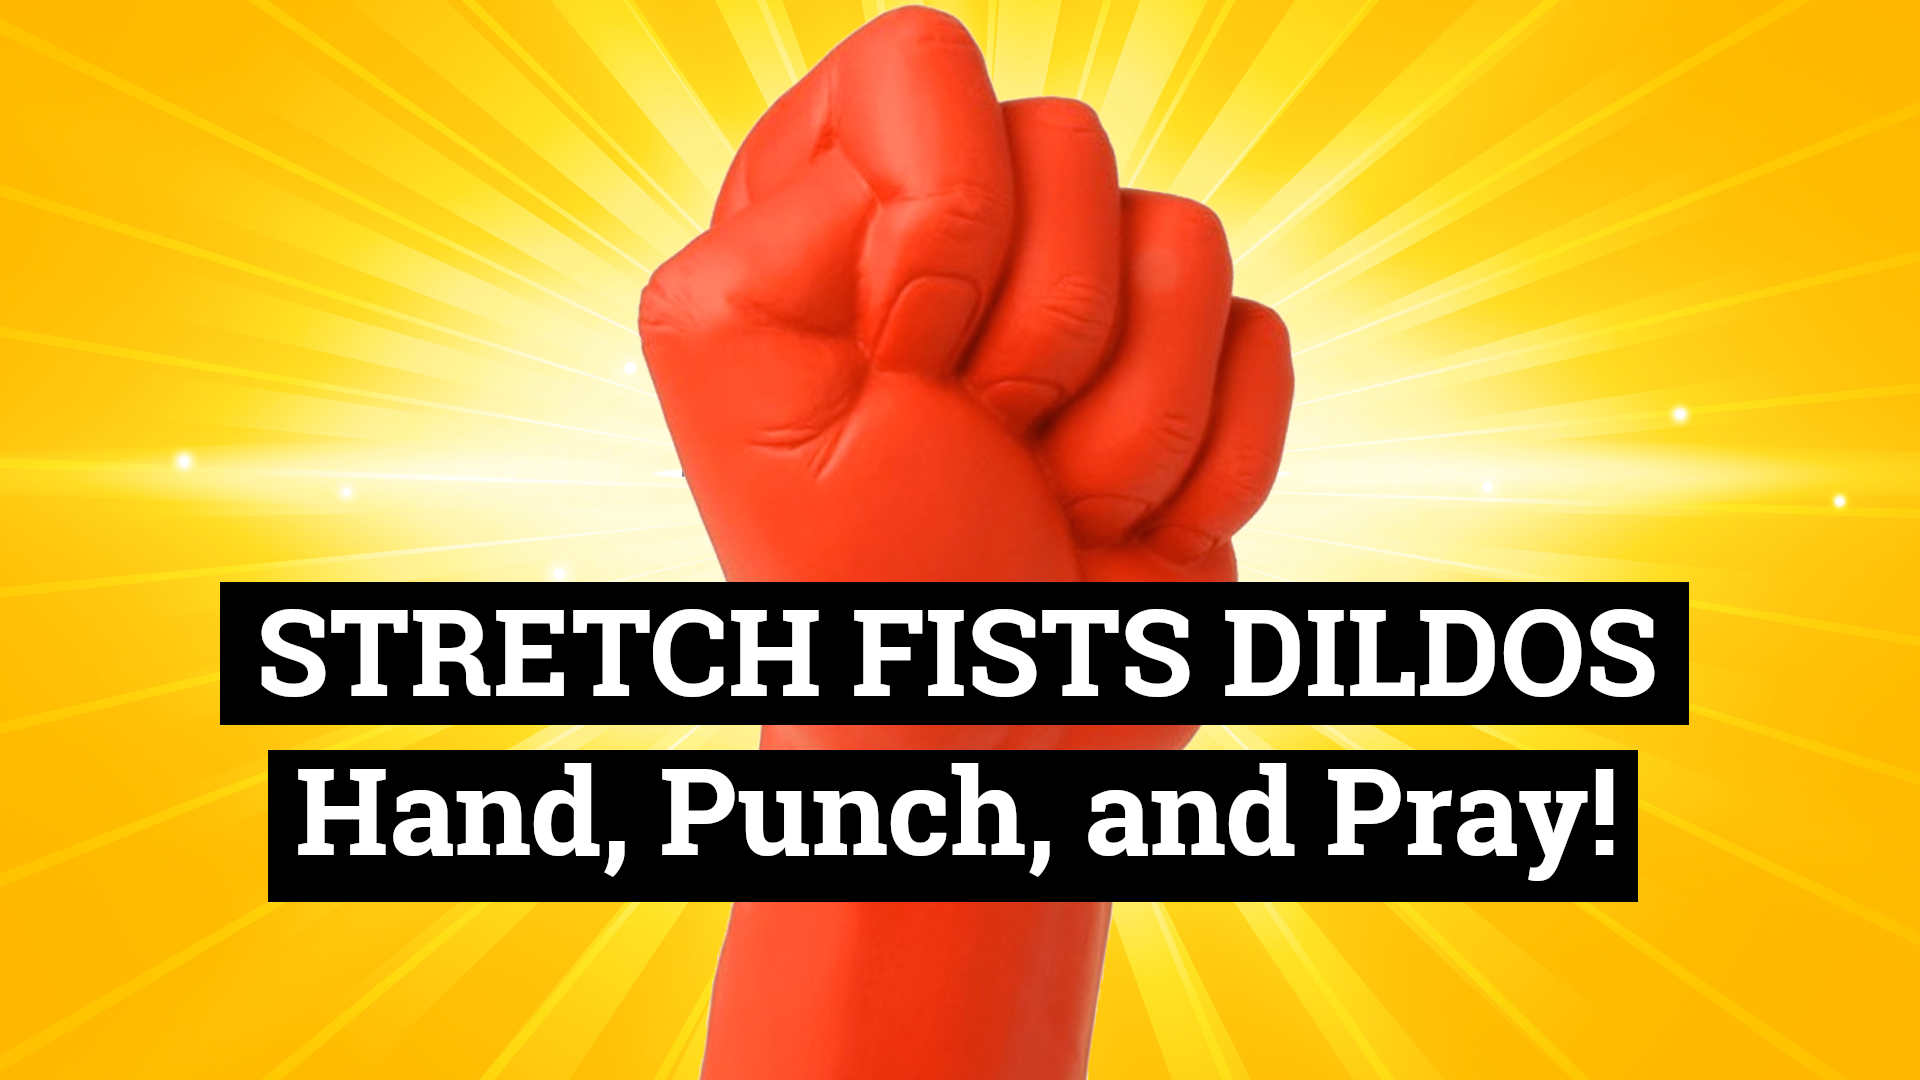 Fists dildos